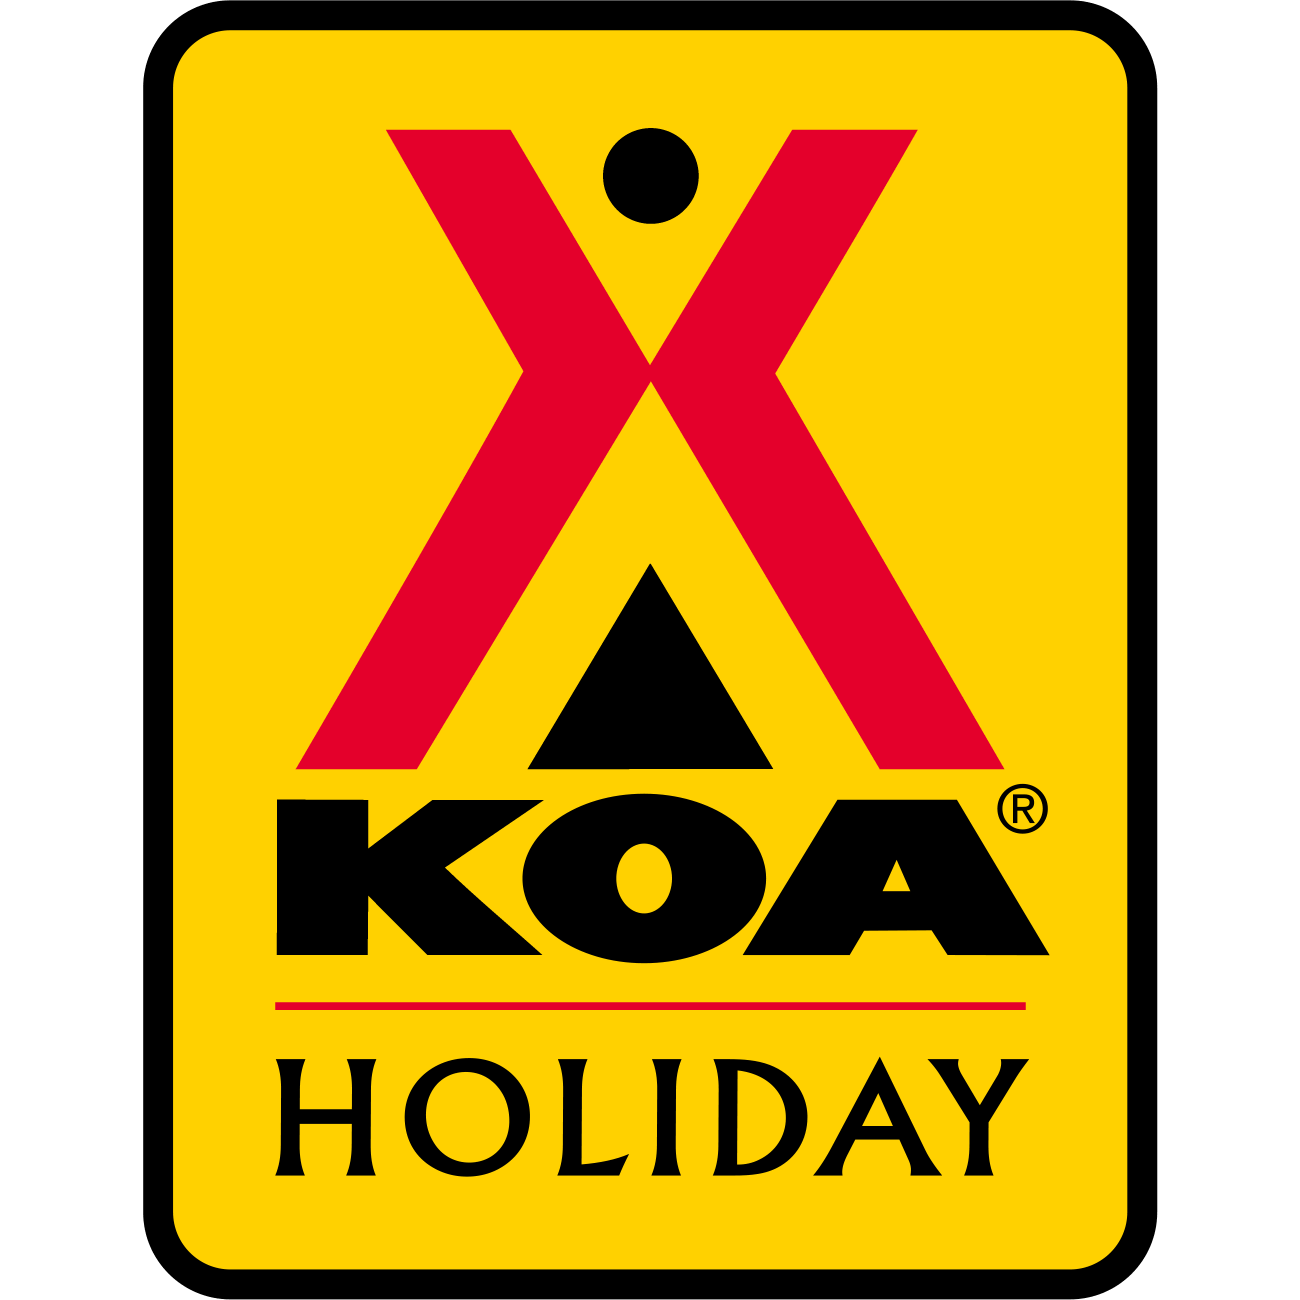 Missoula KOA Holiday